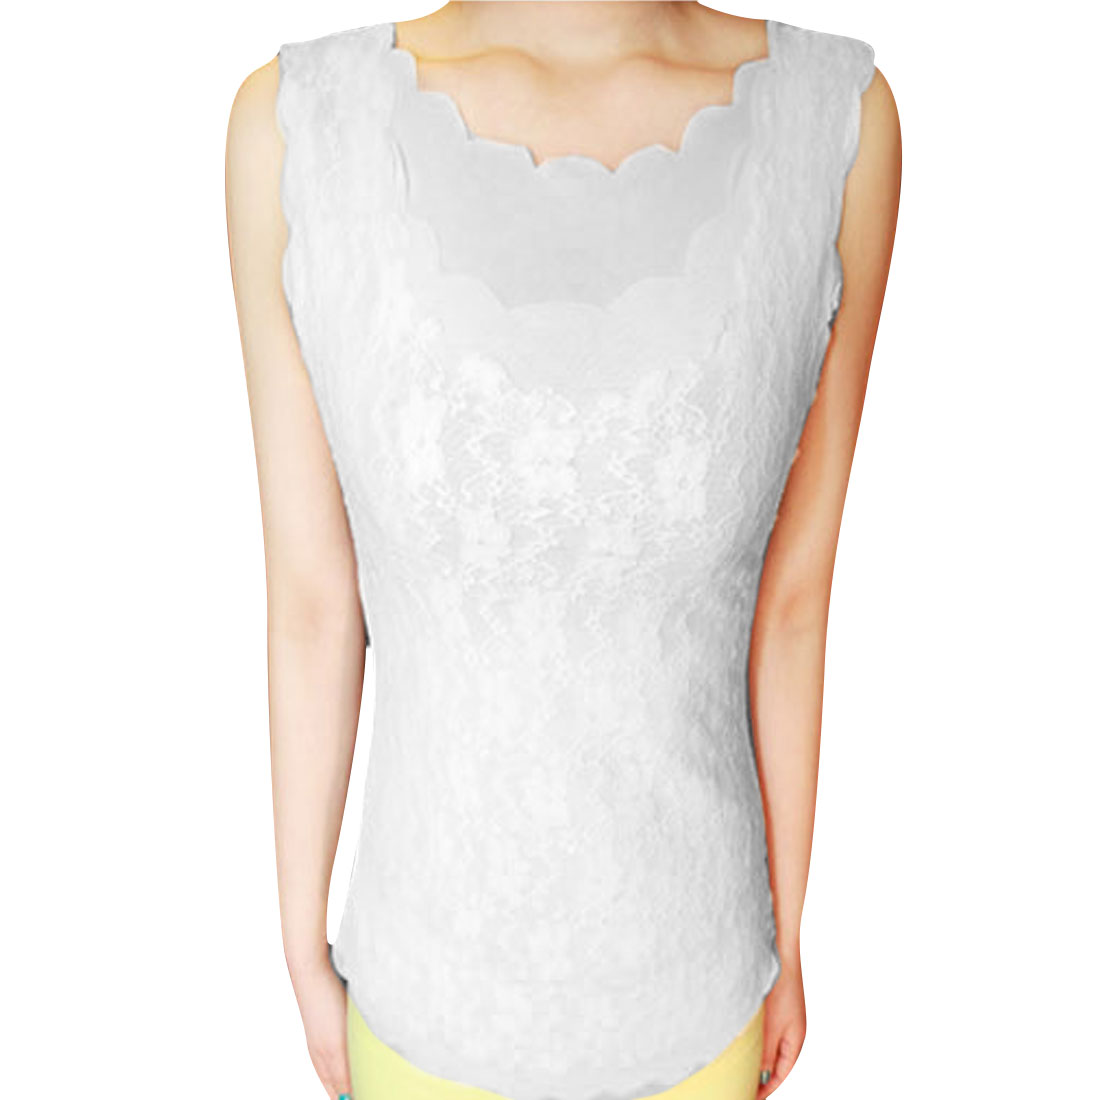 Women Mesh Lining Softness Sleeveless Lace Sexy Shirt White XS